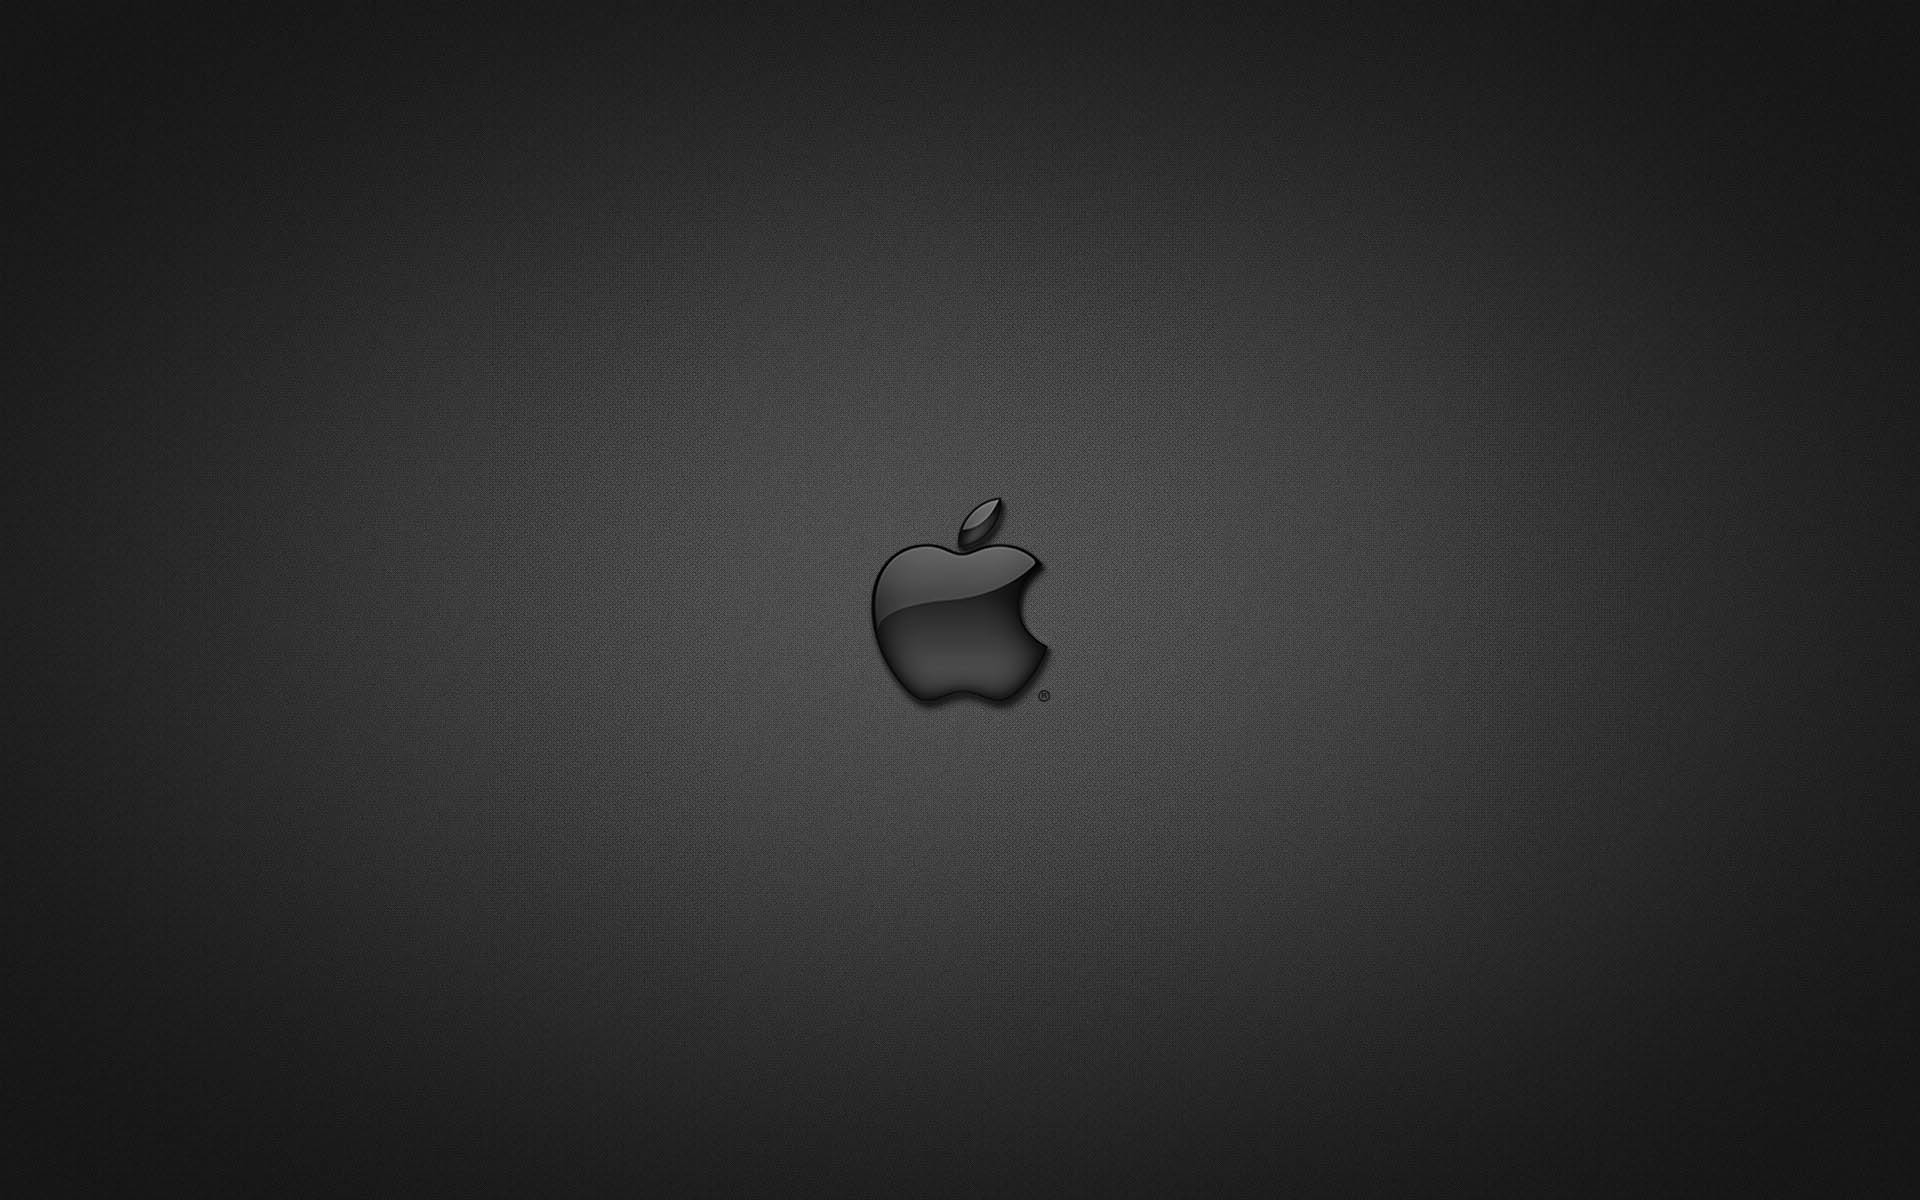 Black Apple HD Wallpaper